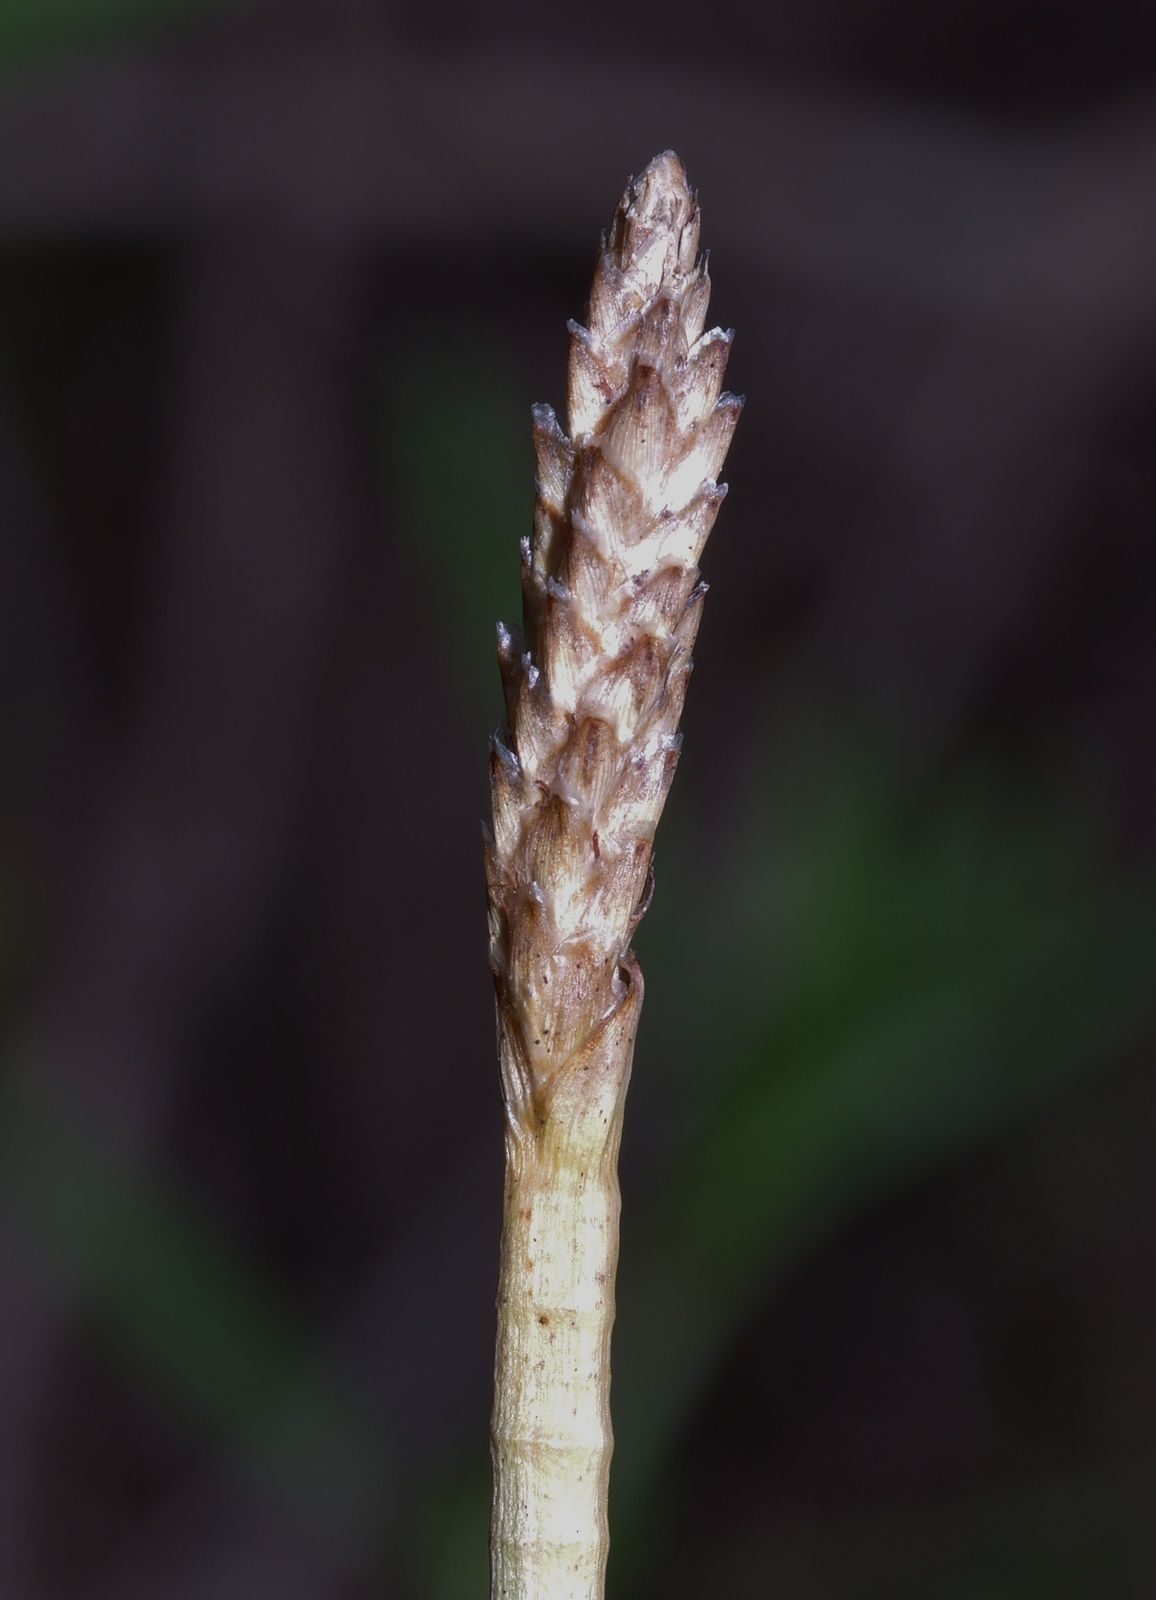 Eleocharis interstincta